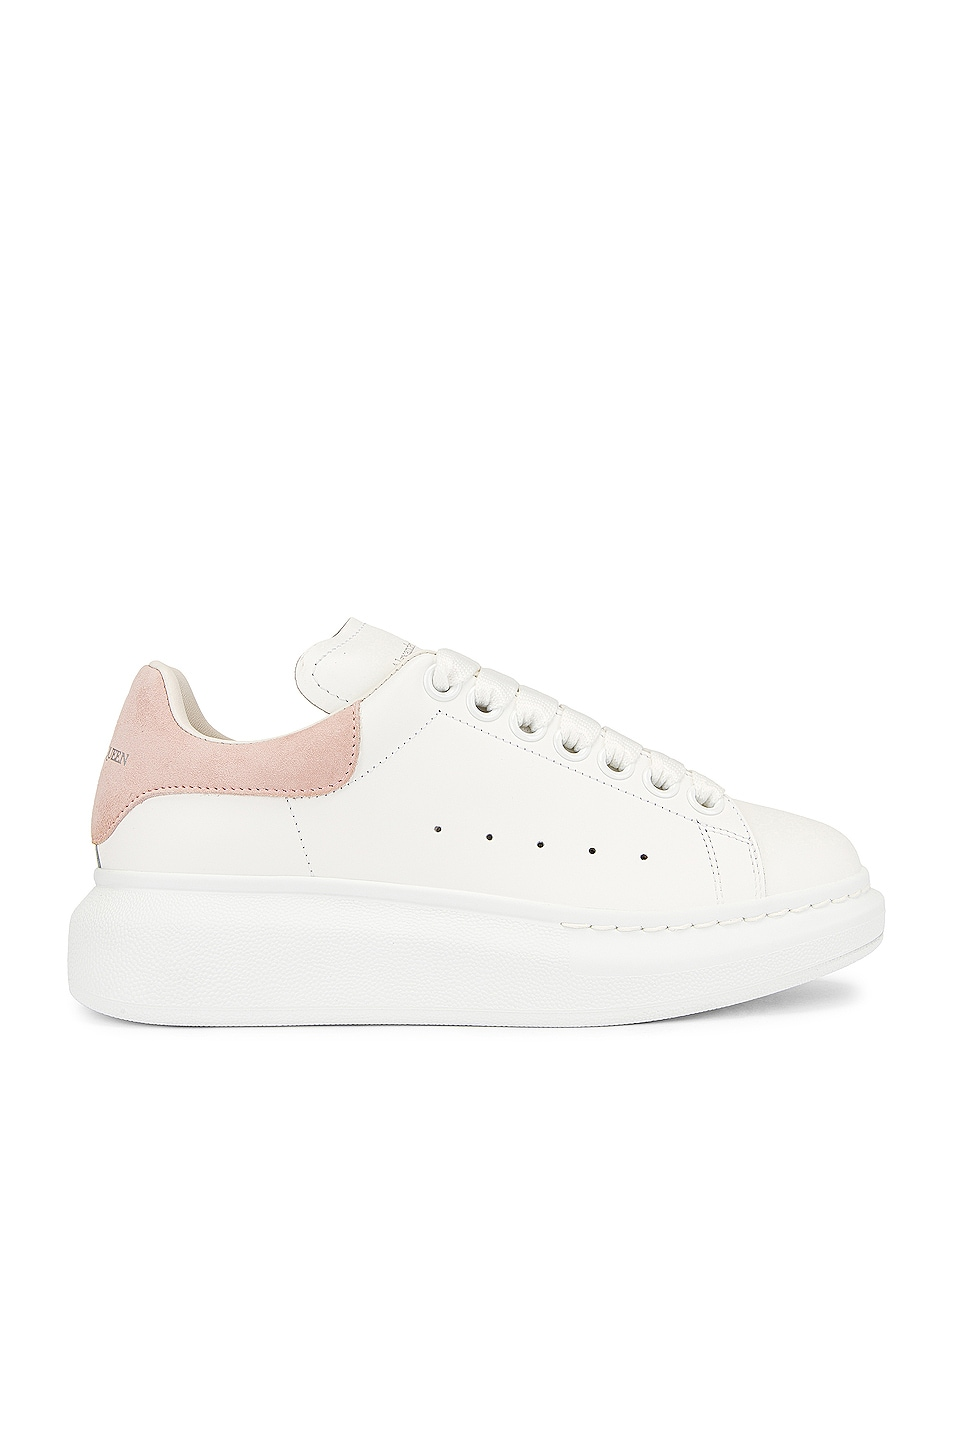 Image 1 of Alexander McQueen Oversized Sneakers in White & Patchou